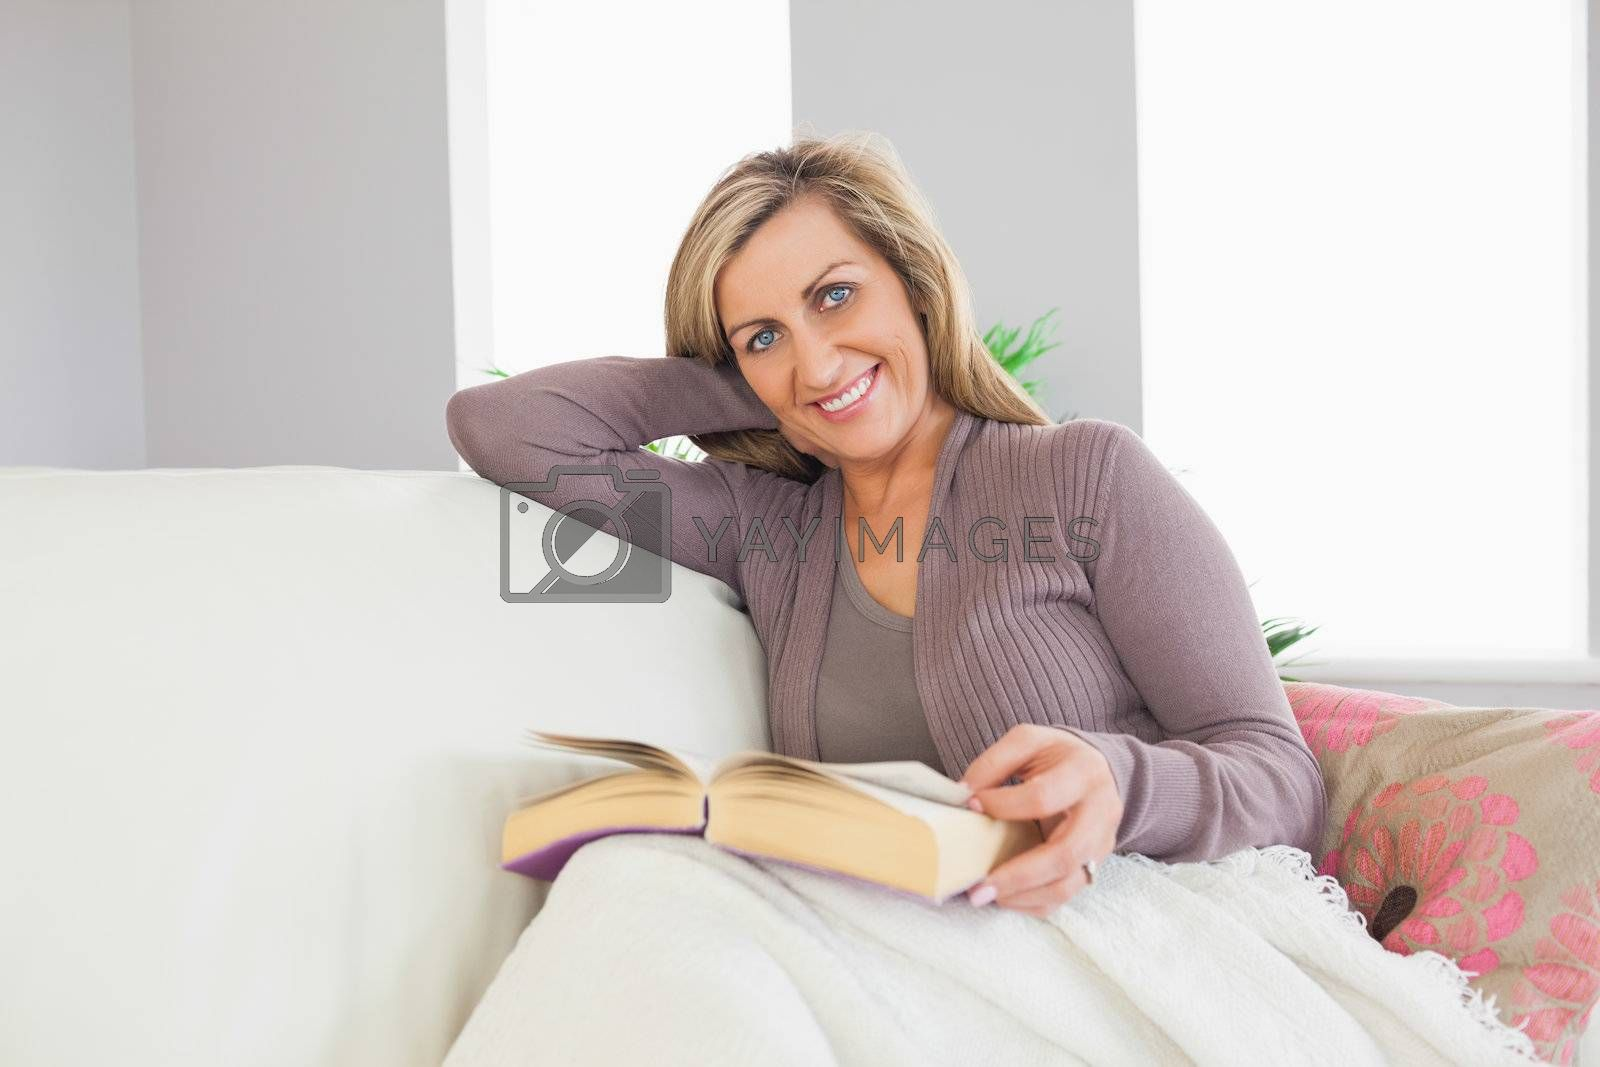 Smiling woman holding a book and lying on a sofa by Wavebreakmedia